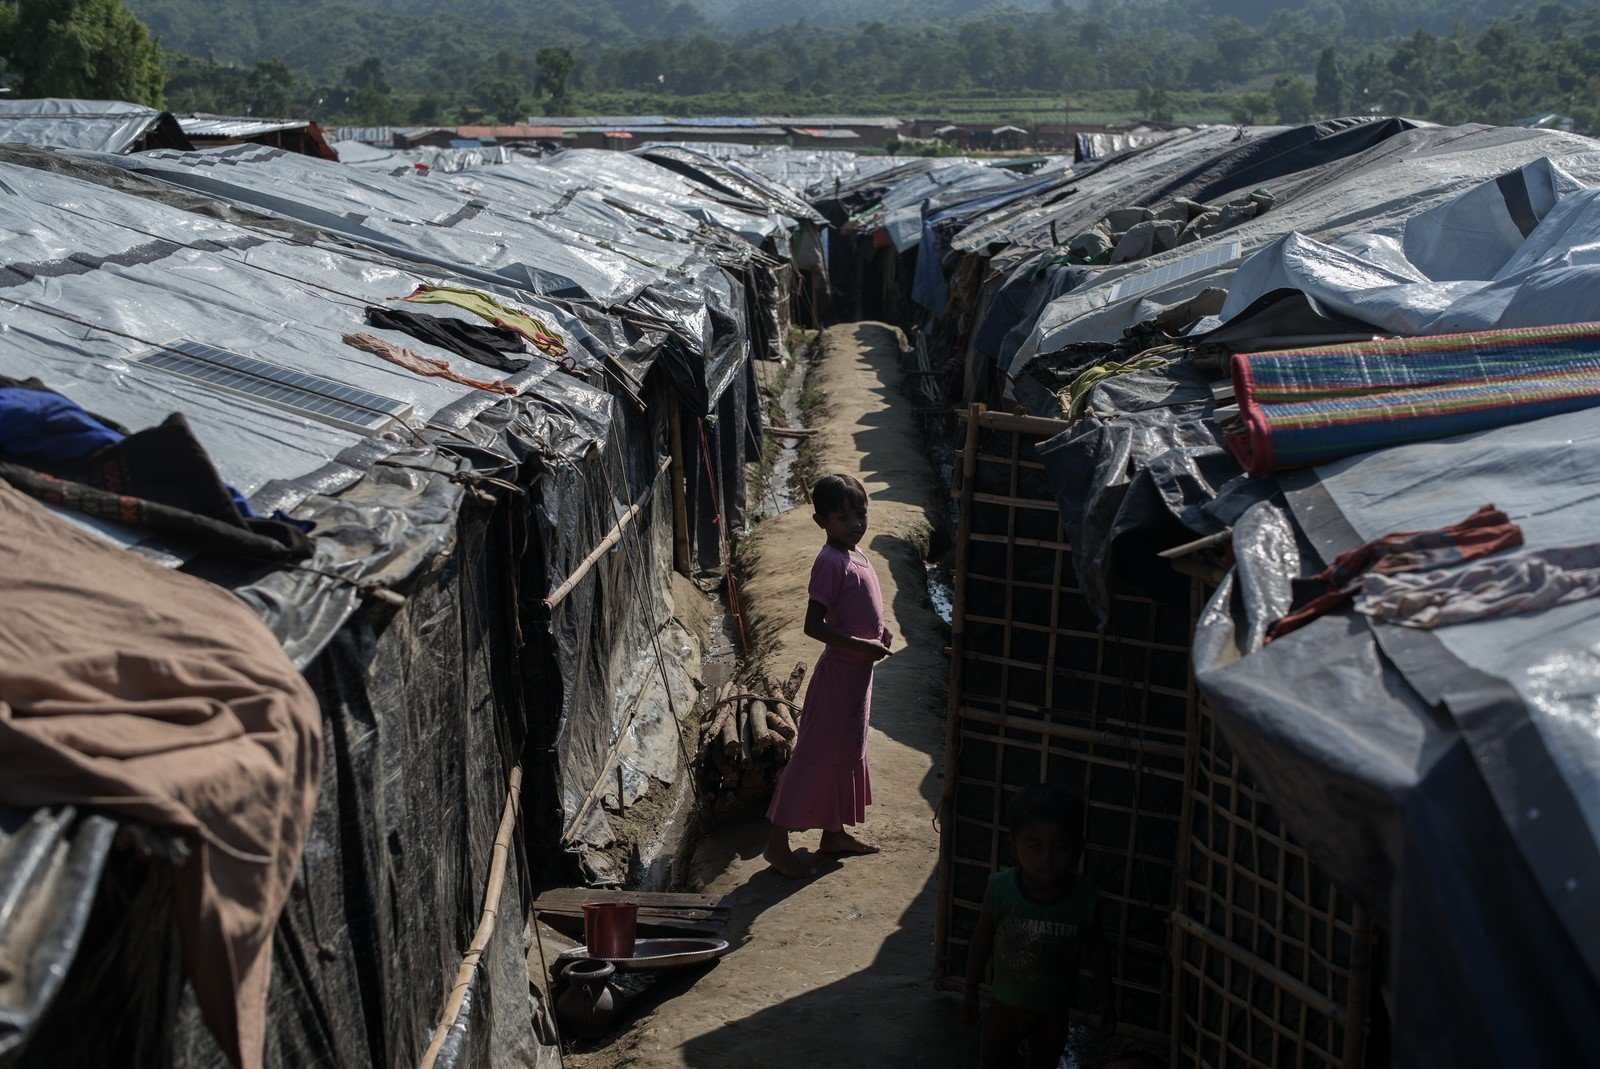 Countless Rohingya refugees have fled to Bangladesh and settled in makeshift camps like this one in Cox's Bazar. (Photo: Ko Chung Ming/Oxfam)